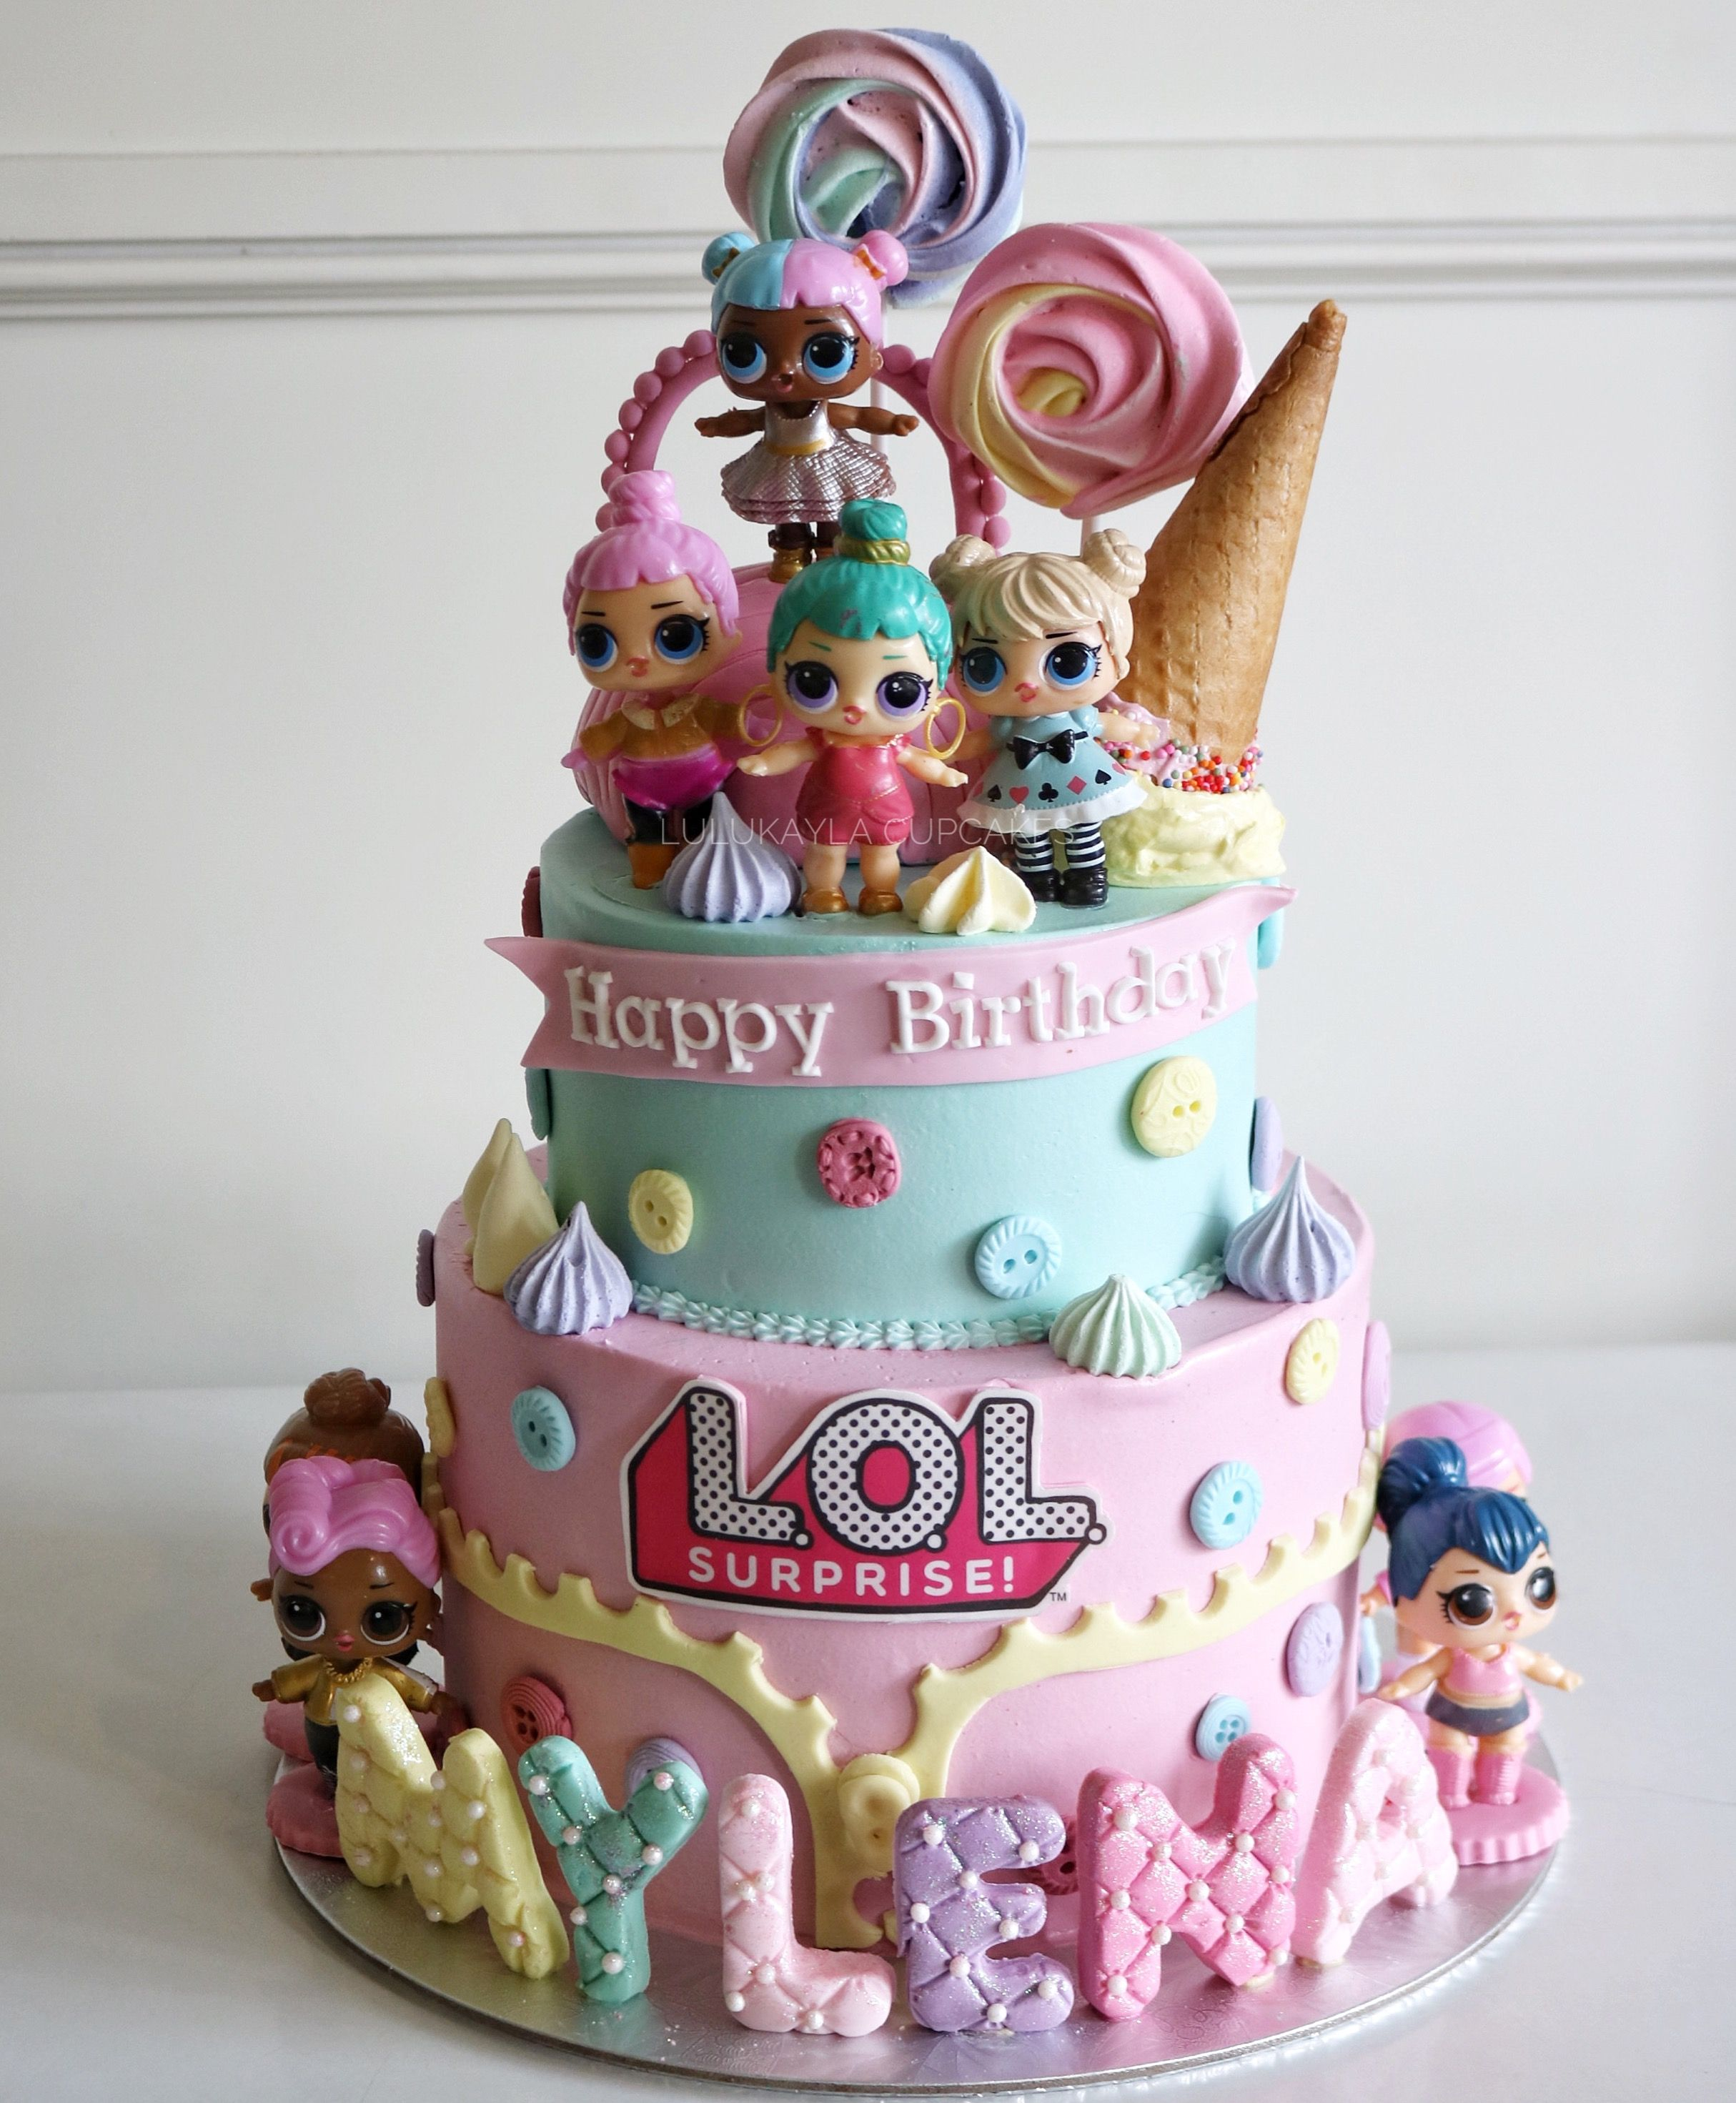 Happy Sunday How Cute Is This Lol Surprise Doll Cake Lol Lolsurprise Birthdaycak With Images Funny Birthday Cakes Doll Birthday Cake Surprise Birthday Cake